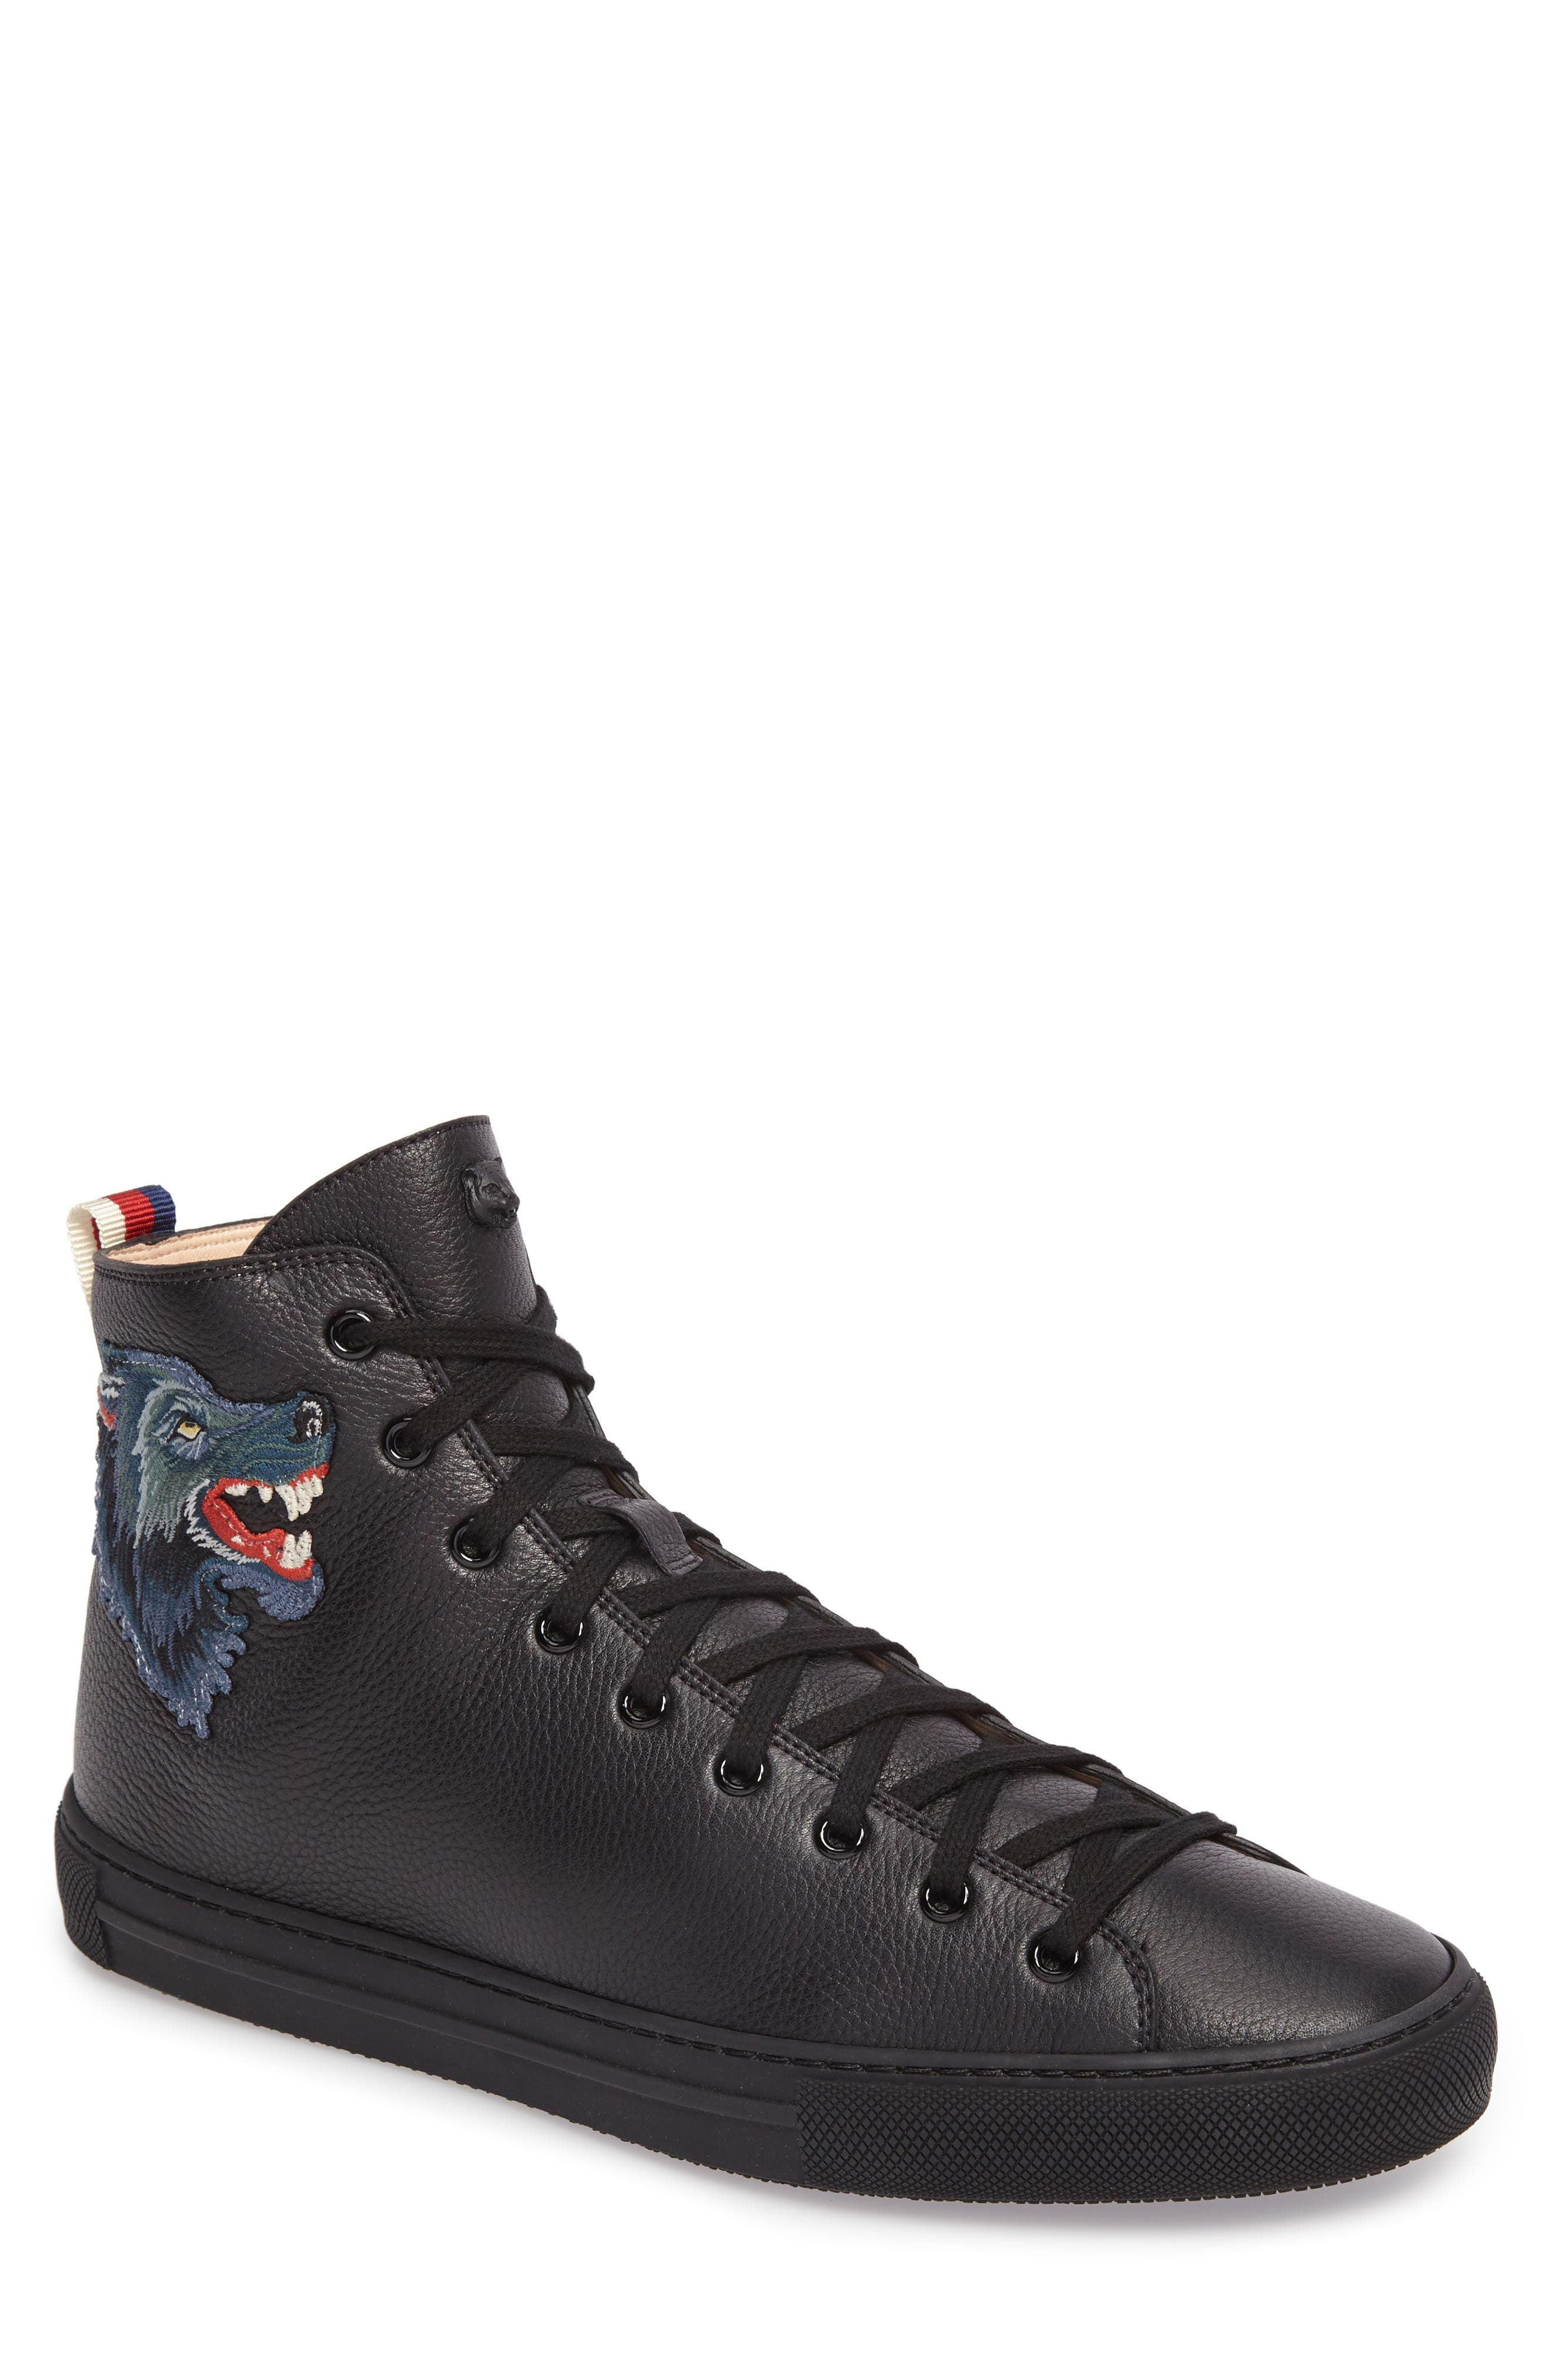 gucci shoes black and white. gucci major angry wolf sneaker (men) shoes black and white